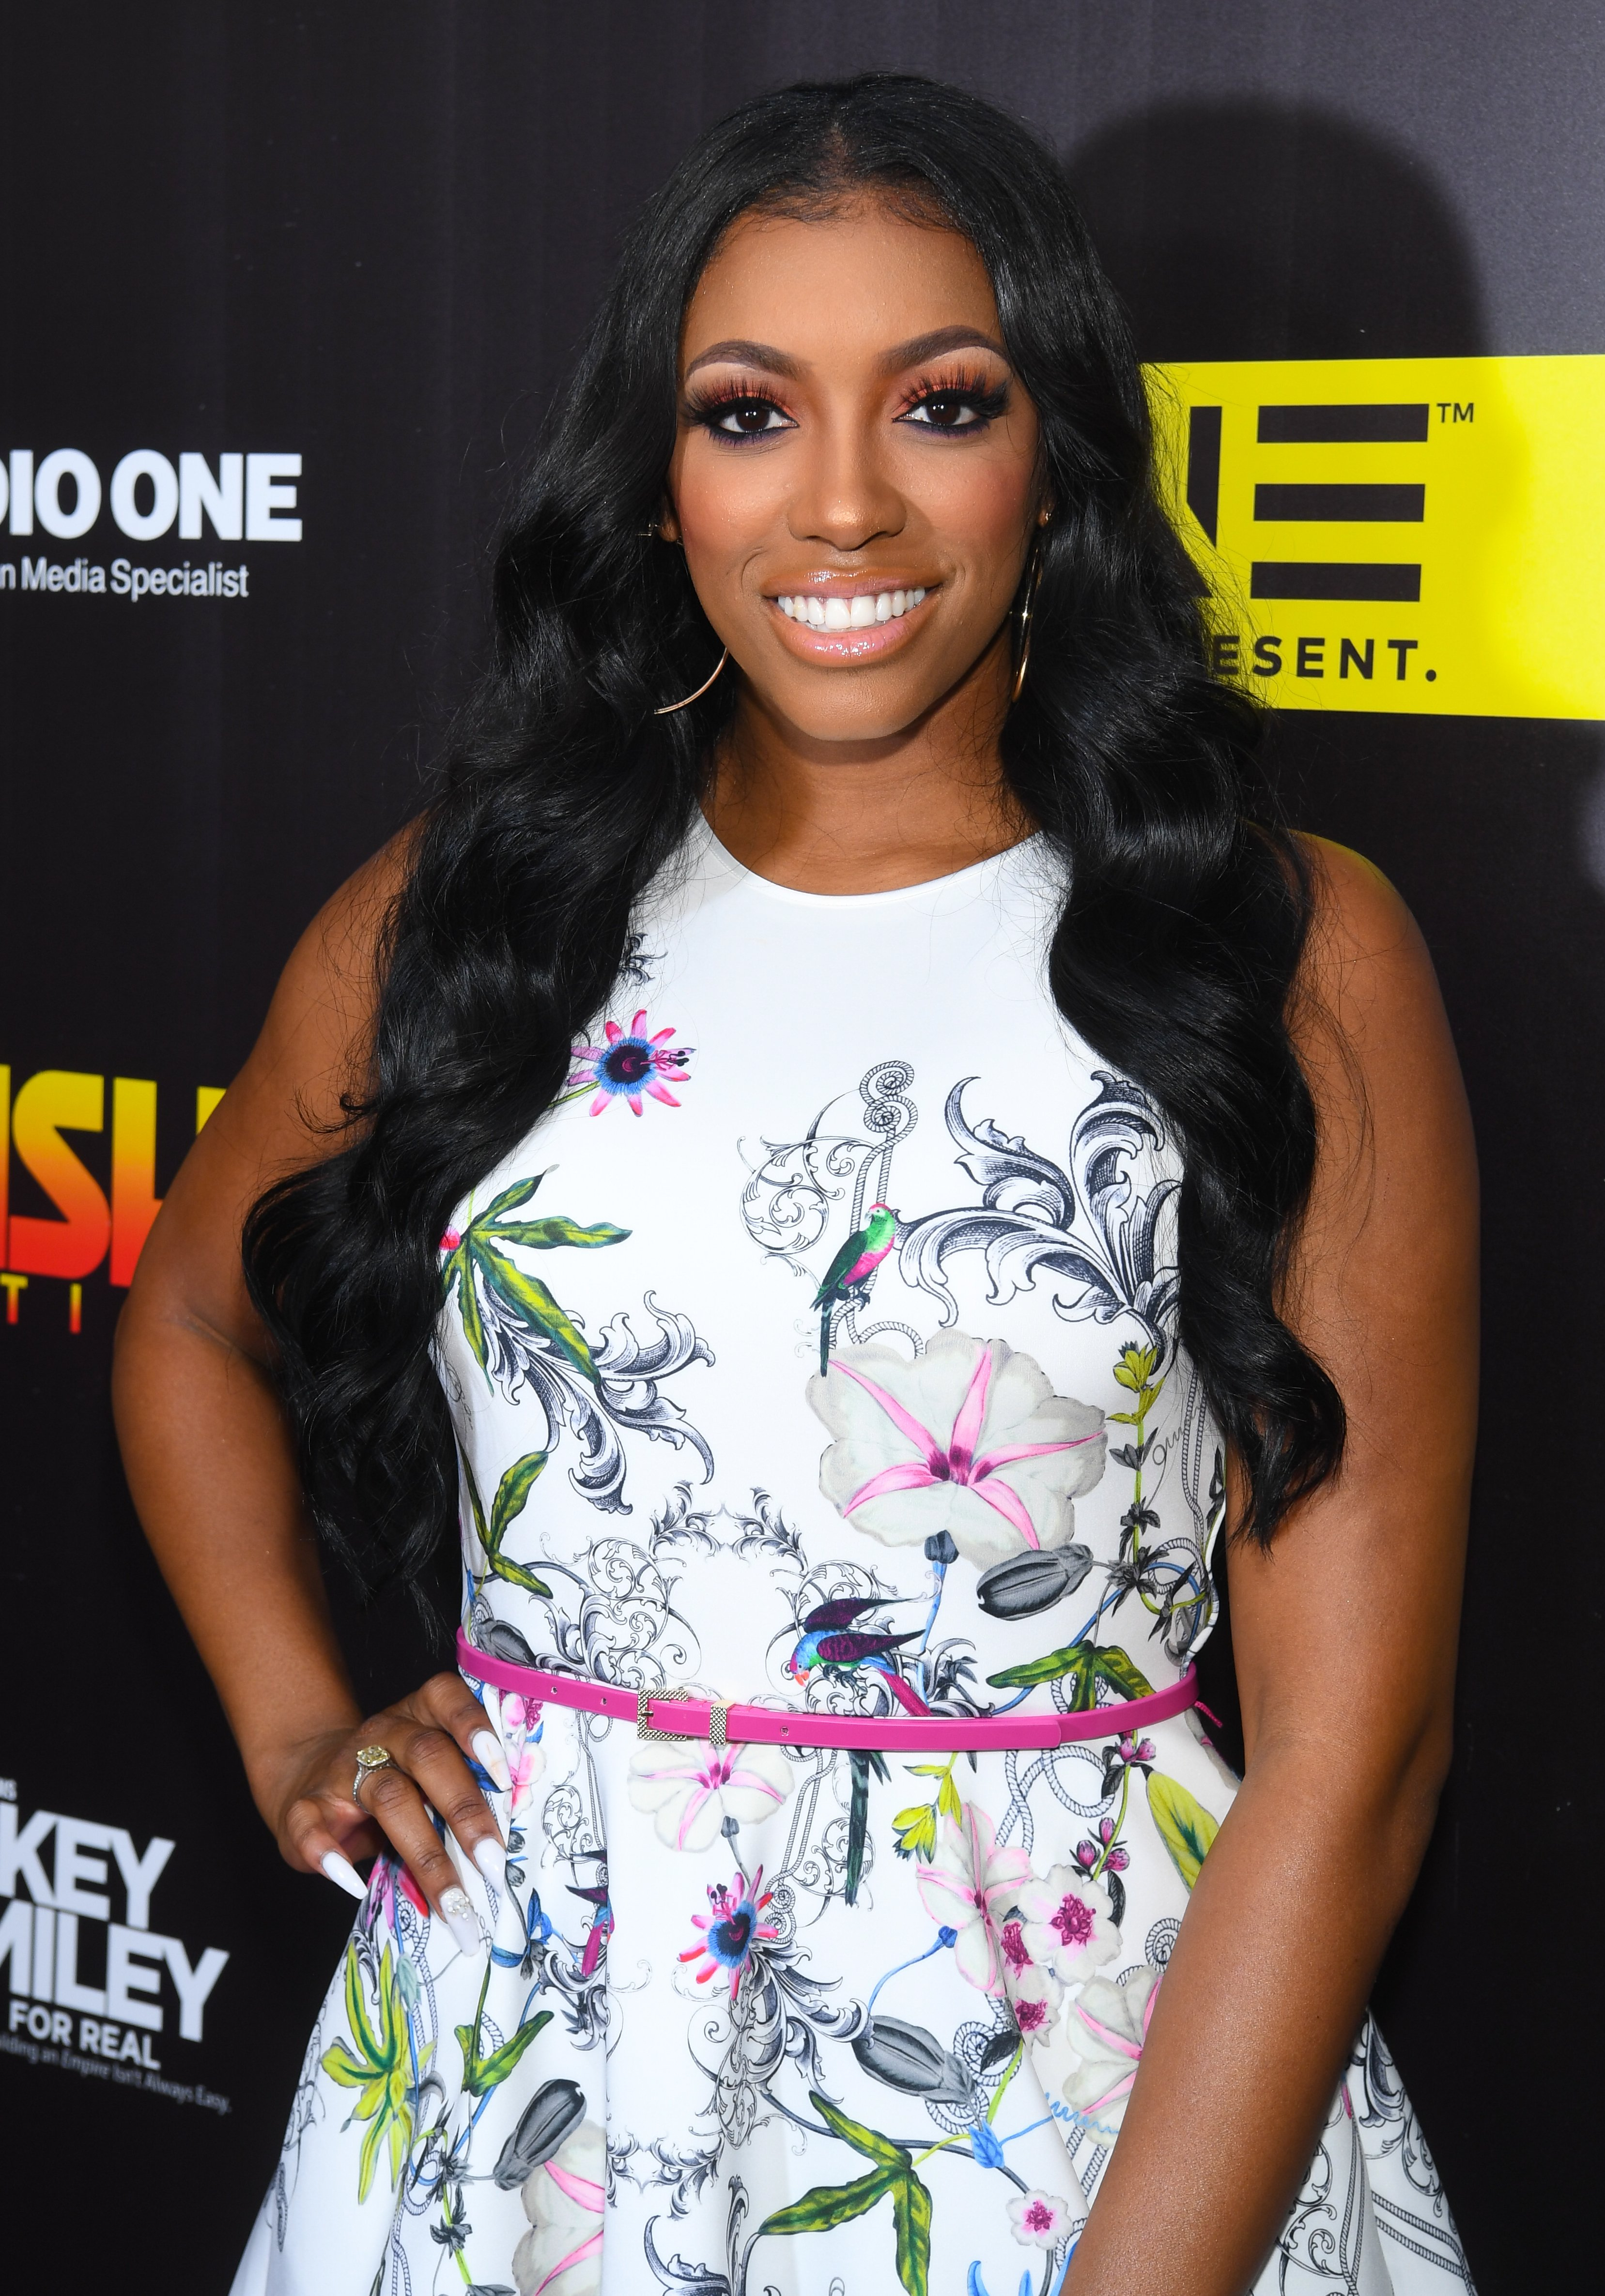 """Porsha Williams at the Season 4 premiere of """"Rickey Smiley For Real"""" in June 2017. 